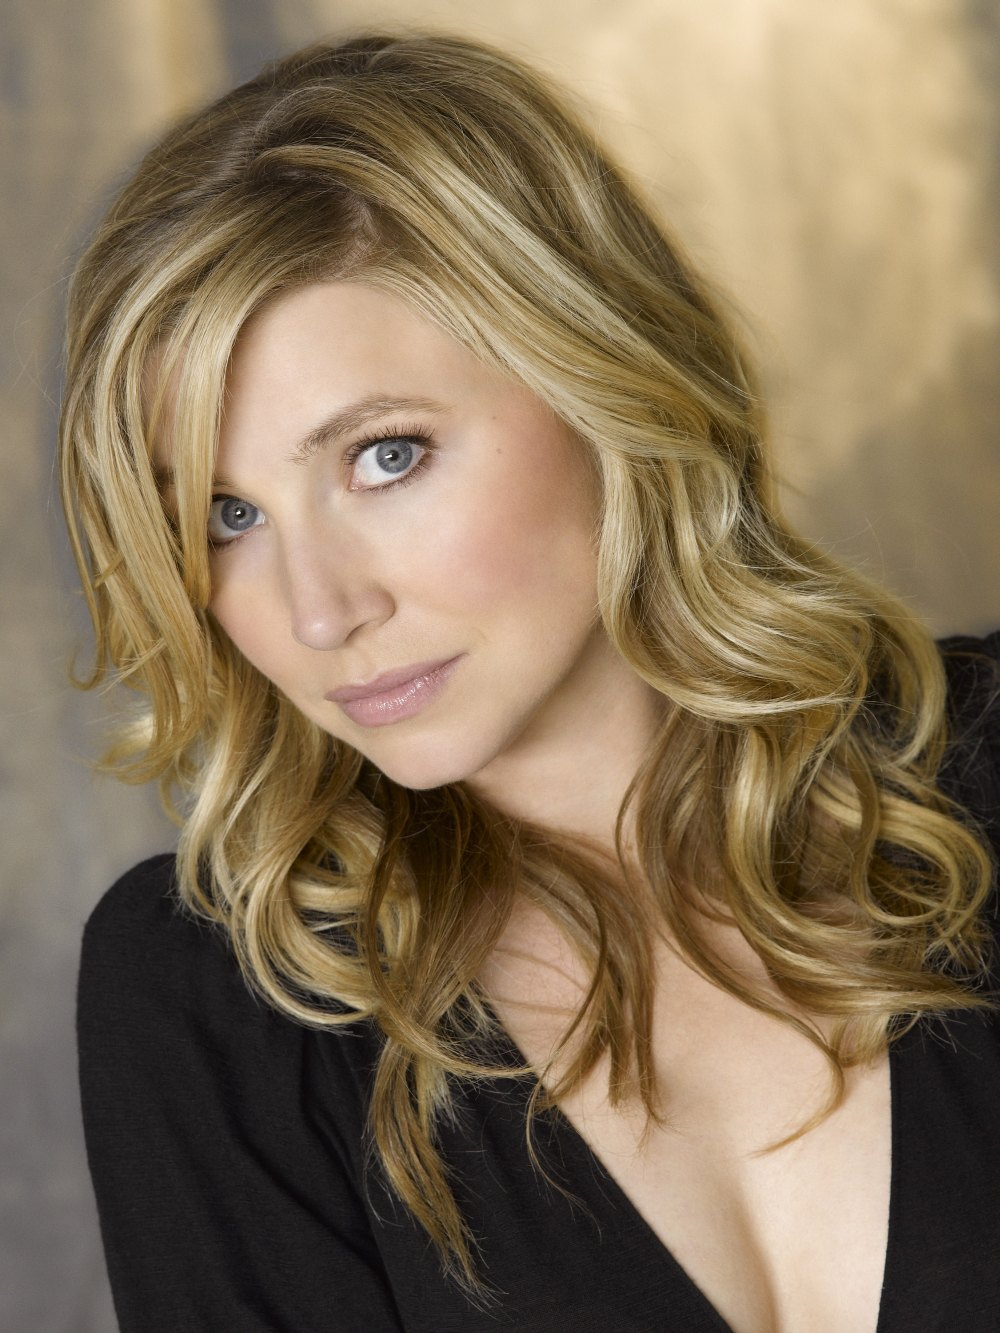 sarah chalke 2016sarah chalke 2016, sarah chalke 2017, sarah chalke husband, sarah chalke scrubs, sarah chalke astrotheme, sarah chalke german, sarah chalke weight height, sarah chalke roseanne, sarah chalke beth, sarah chalke instagram, sarah chalke rick and morty, sarah chalke speaks german, sarah chalke twitter, sarah chalke 2015, sarah chalke speaks french, sarah chalke and donald faison